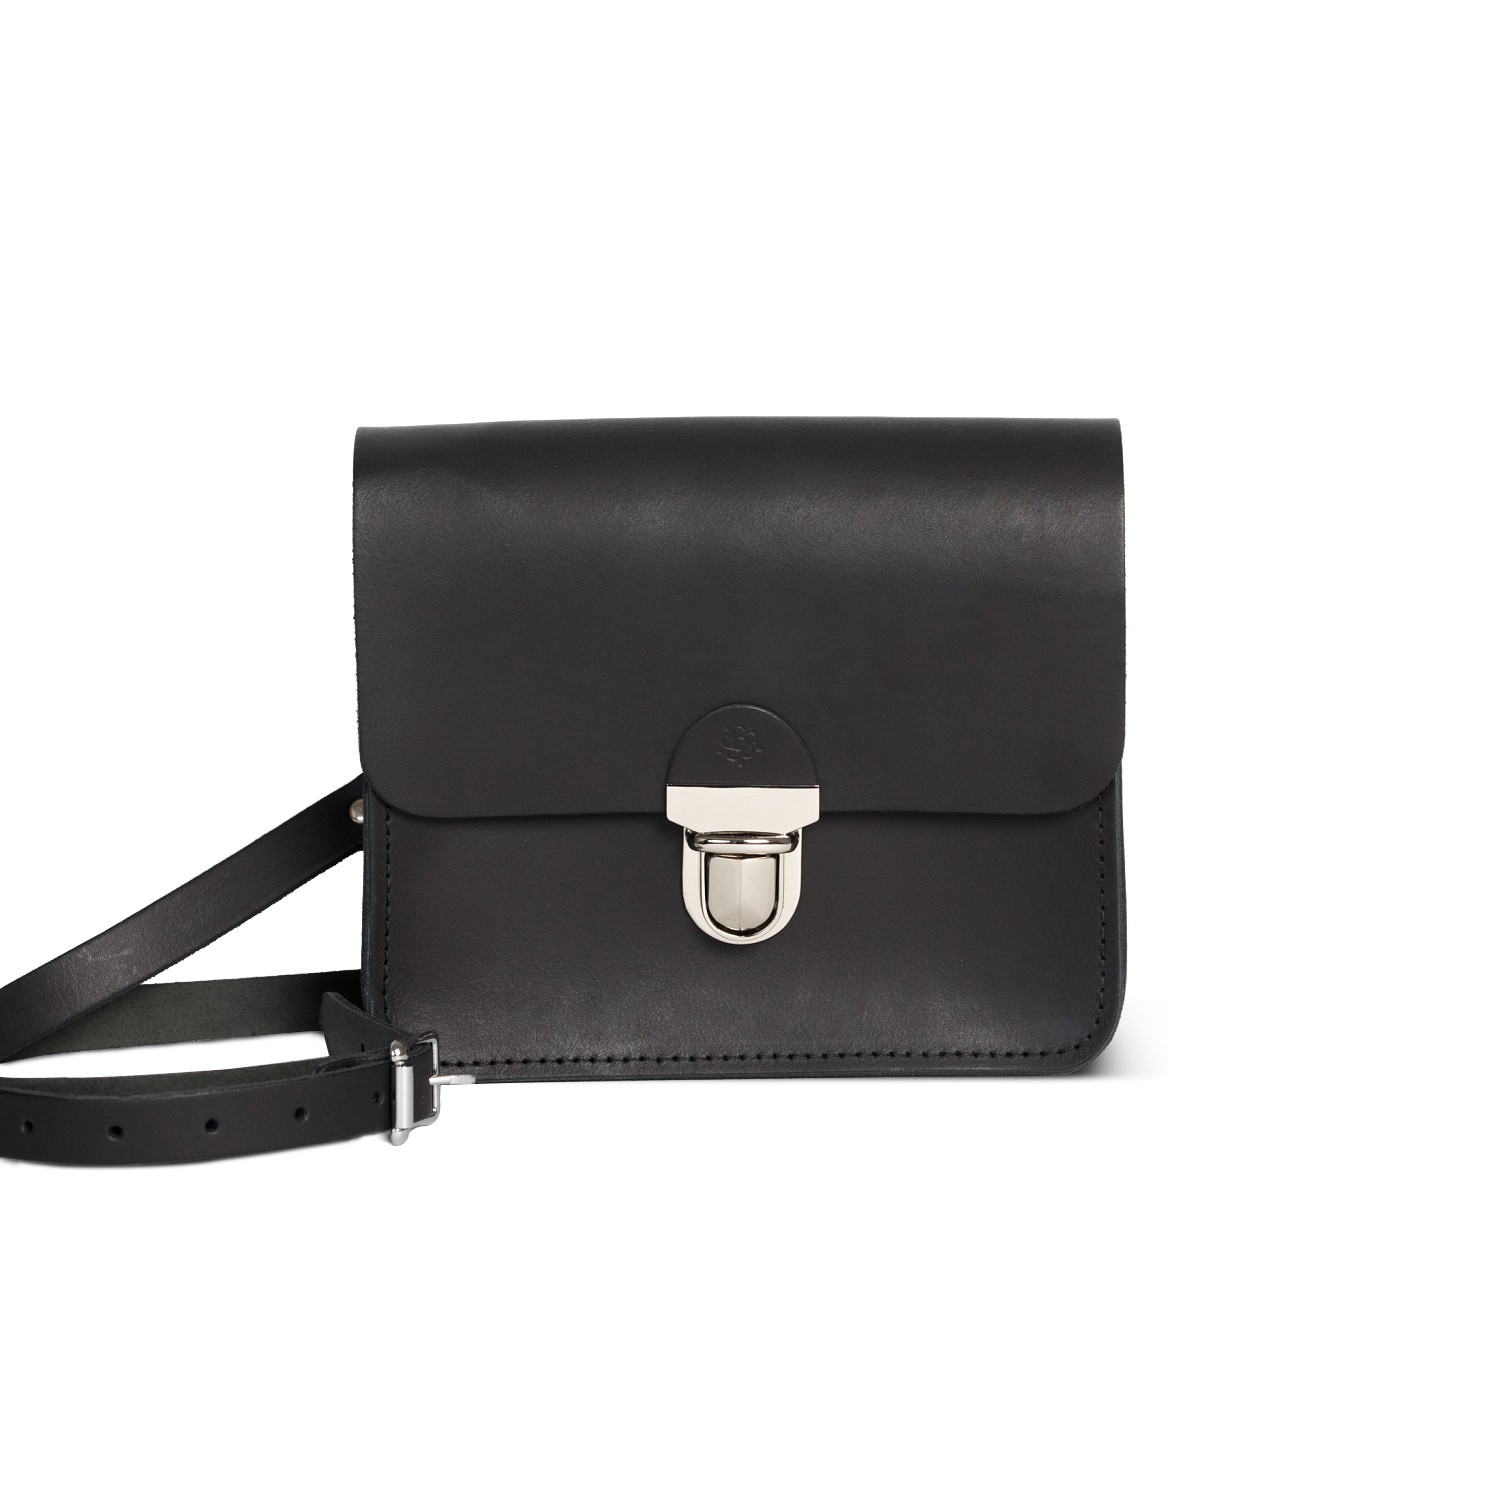 Sofia Premium Leather Crossbody Bag in Vintage Black